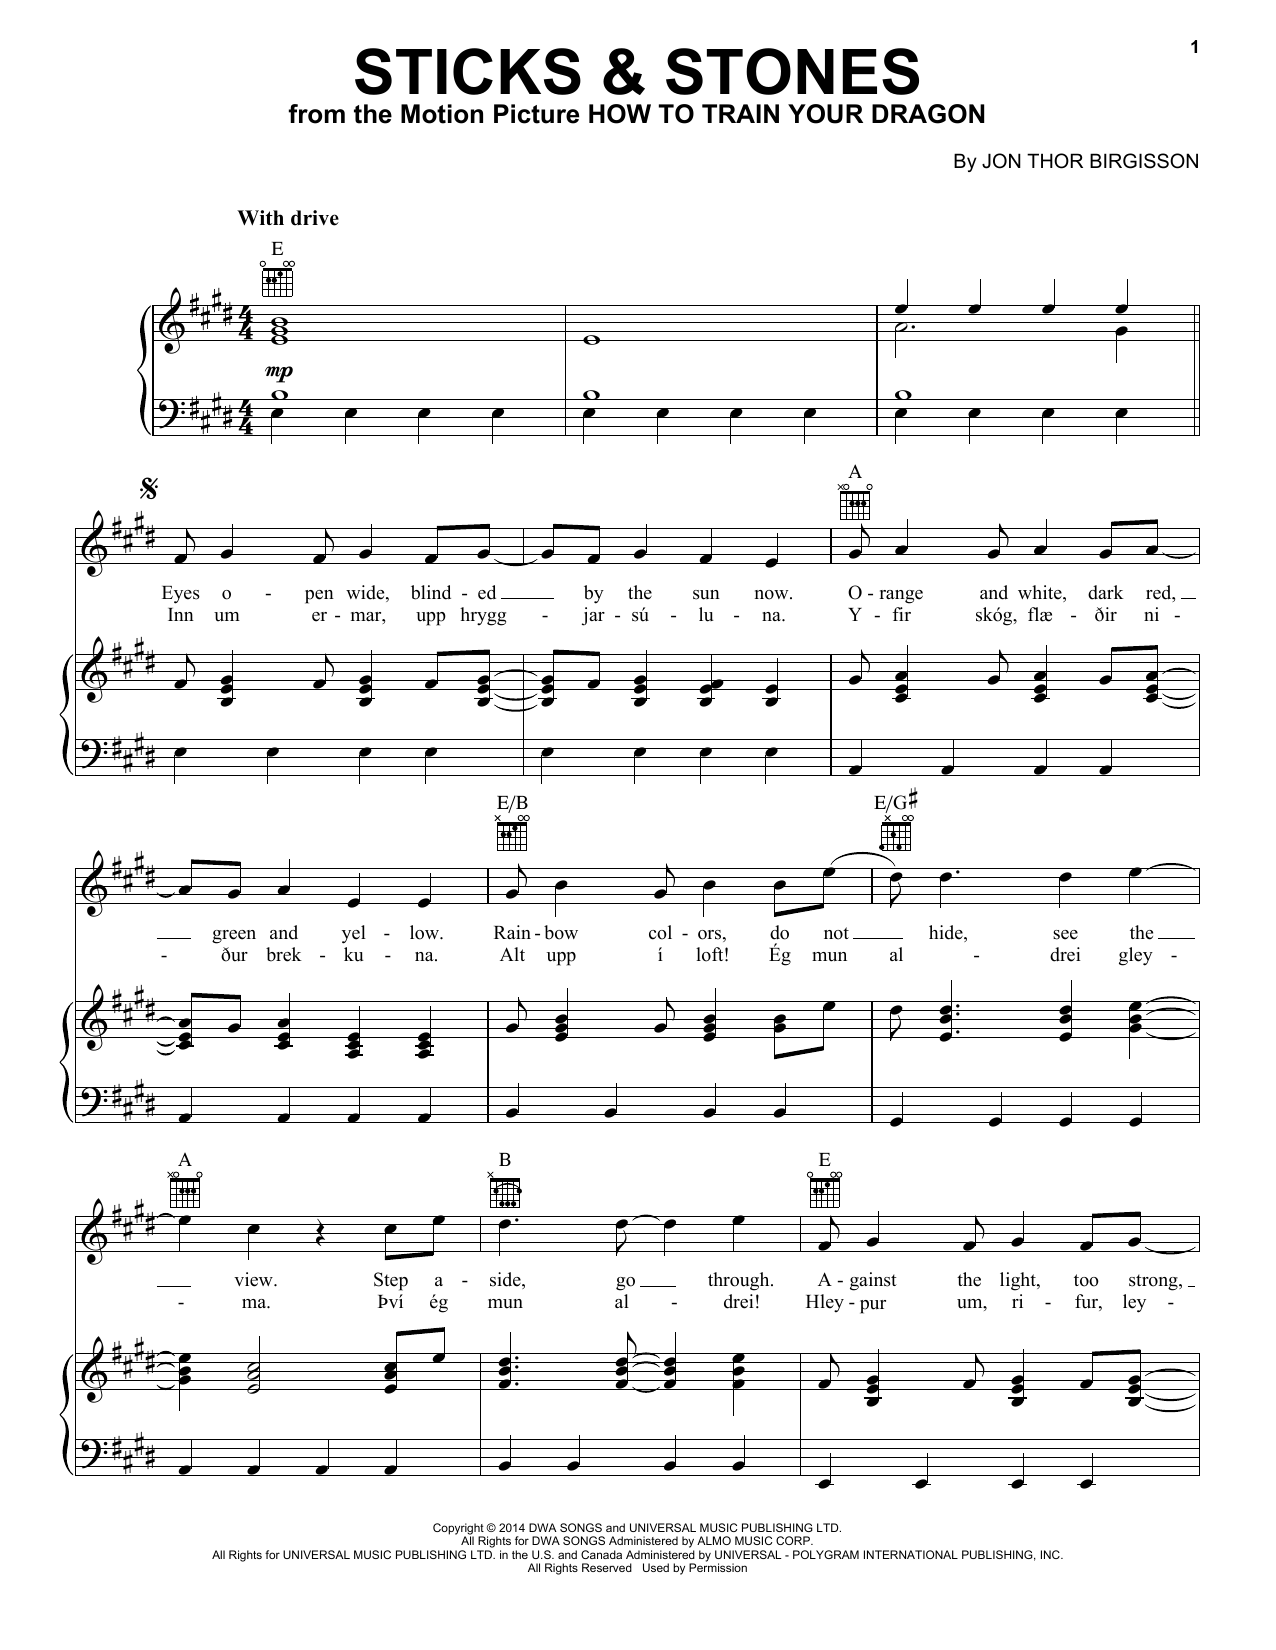 Sticks & Stones Sheet Music